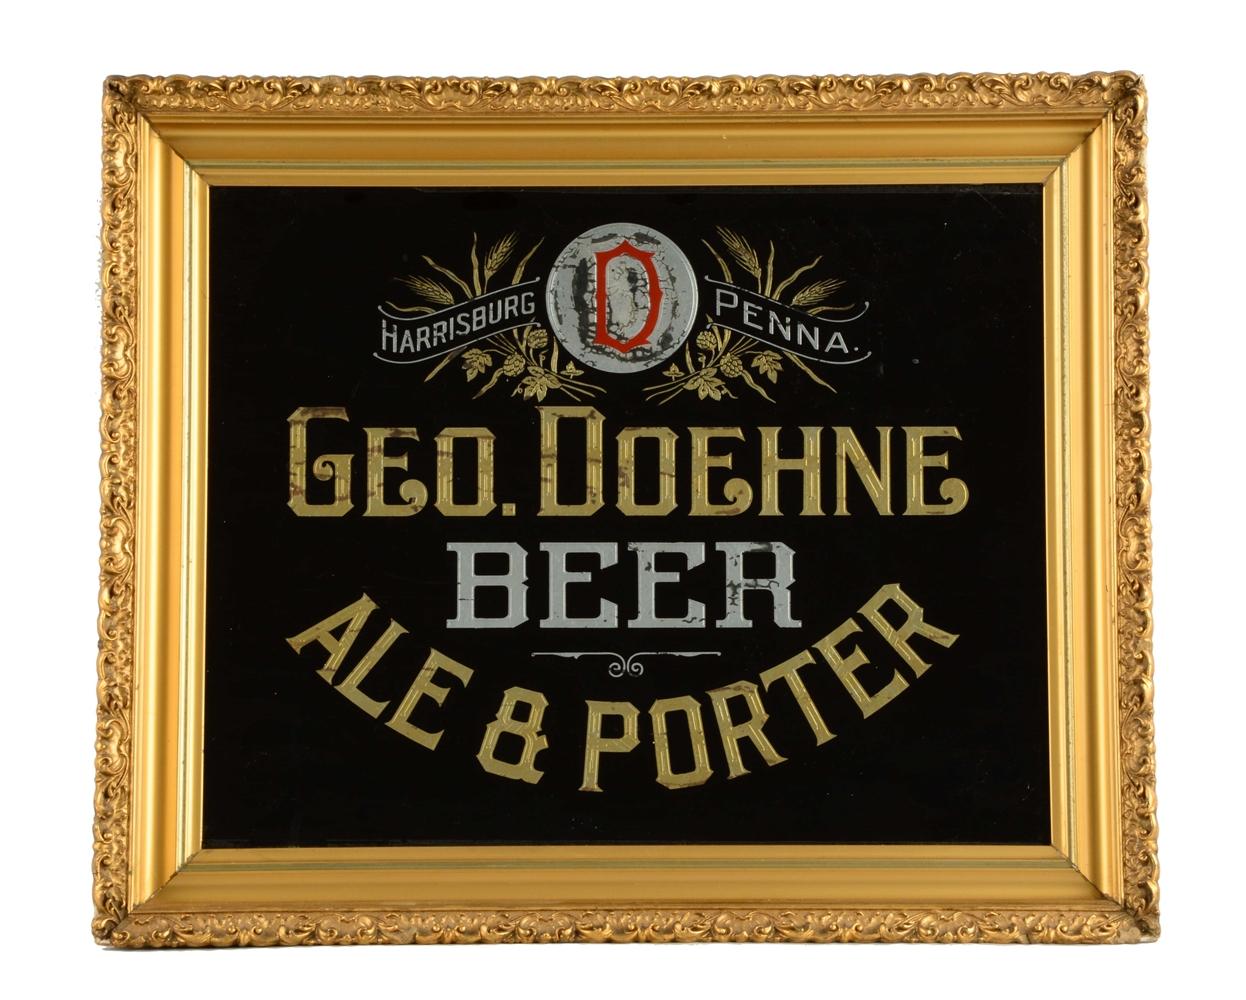 George Doehne Beer Reverse Glass Sign.